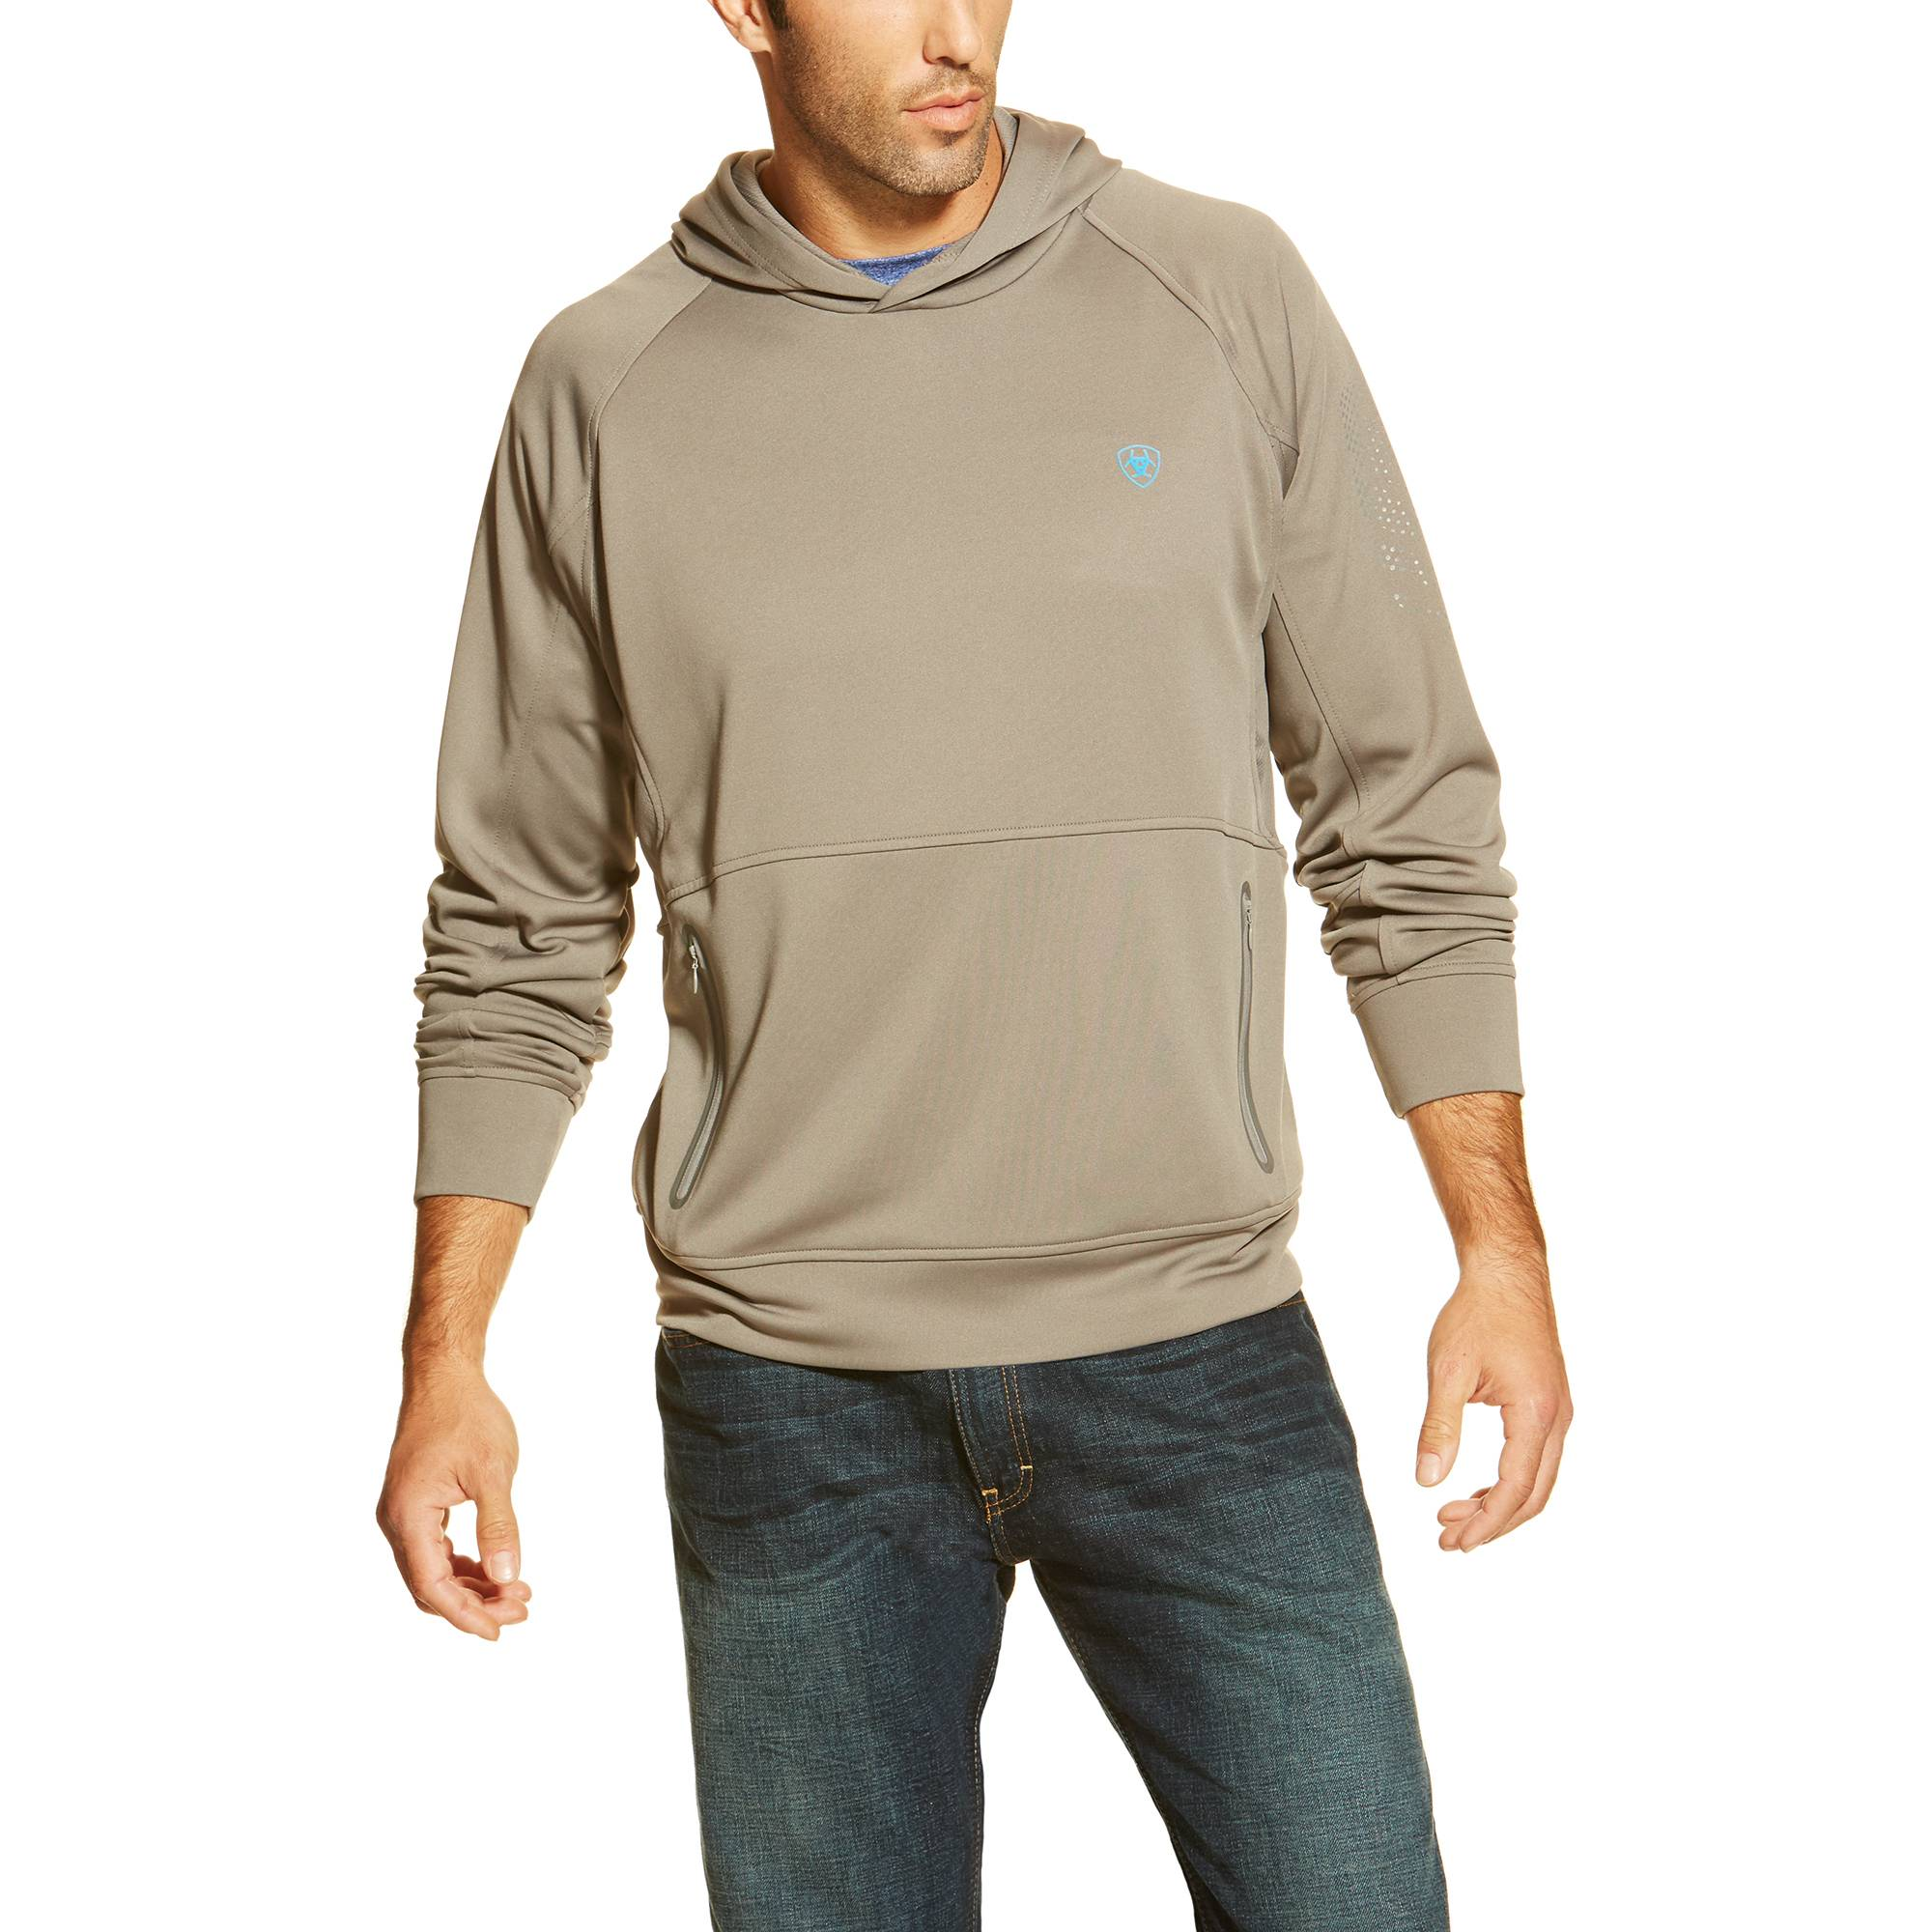 Ariat Men's Flux Hoodie - Jetty Grey